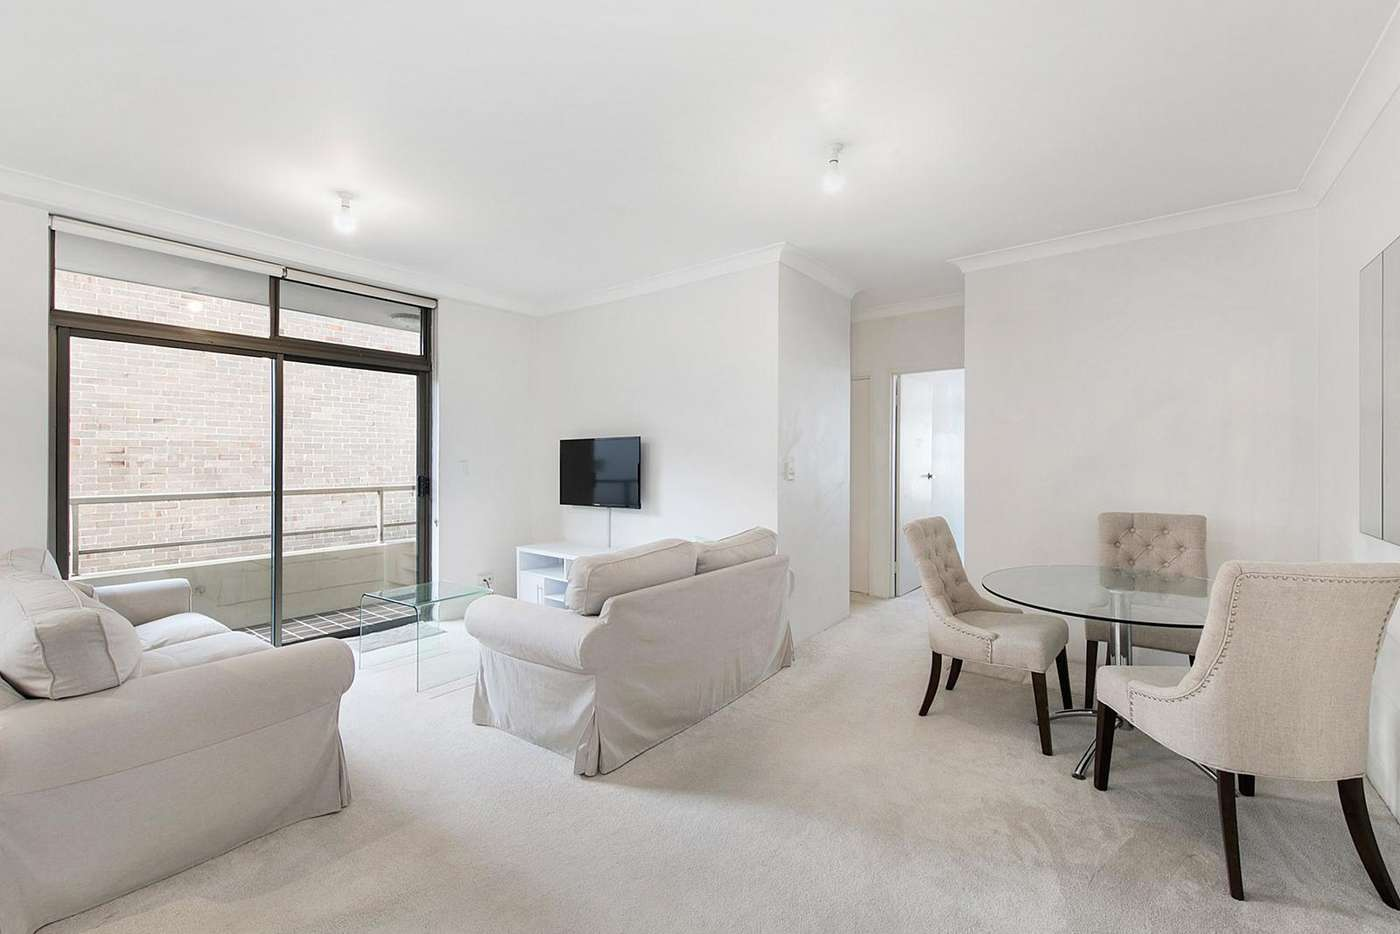 Main view of Homely apartment listing, 6/5 Wentworth Street, Manly NSW 2095